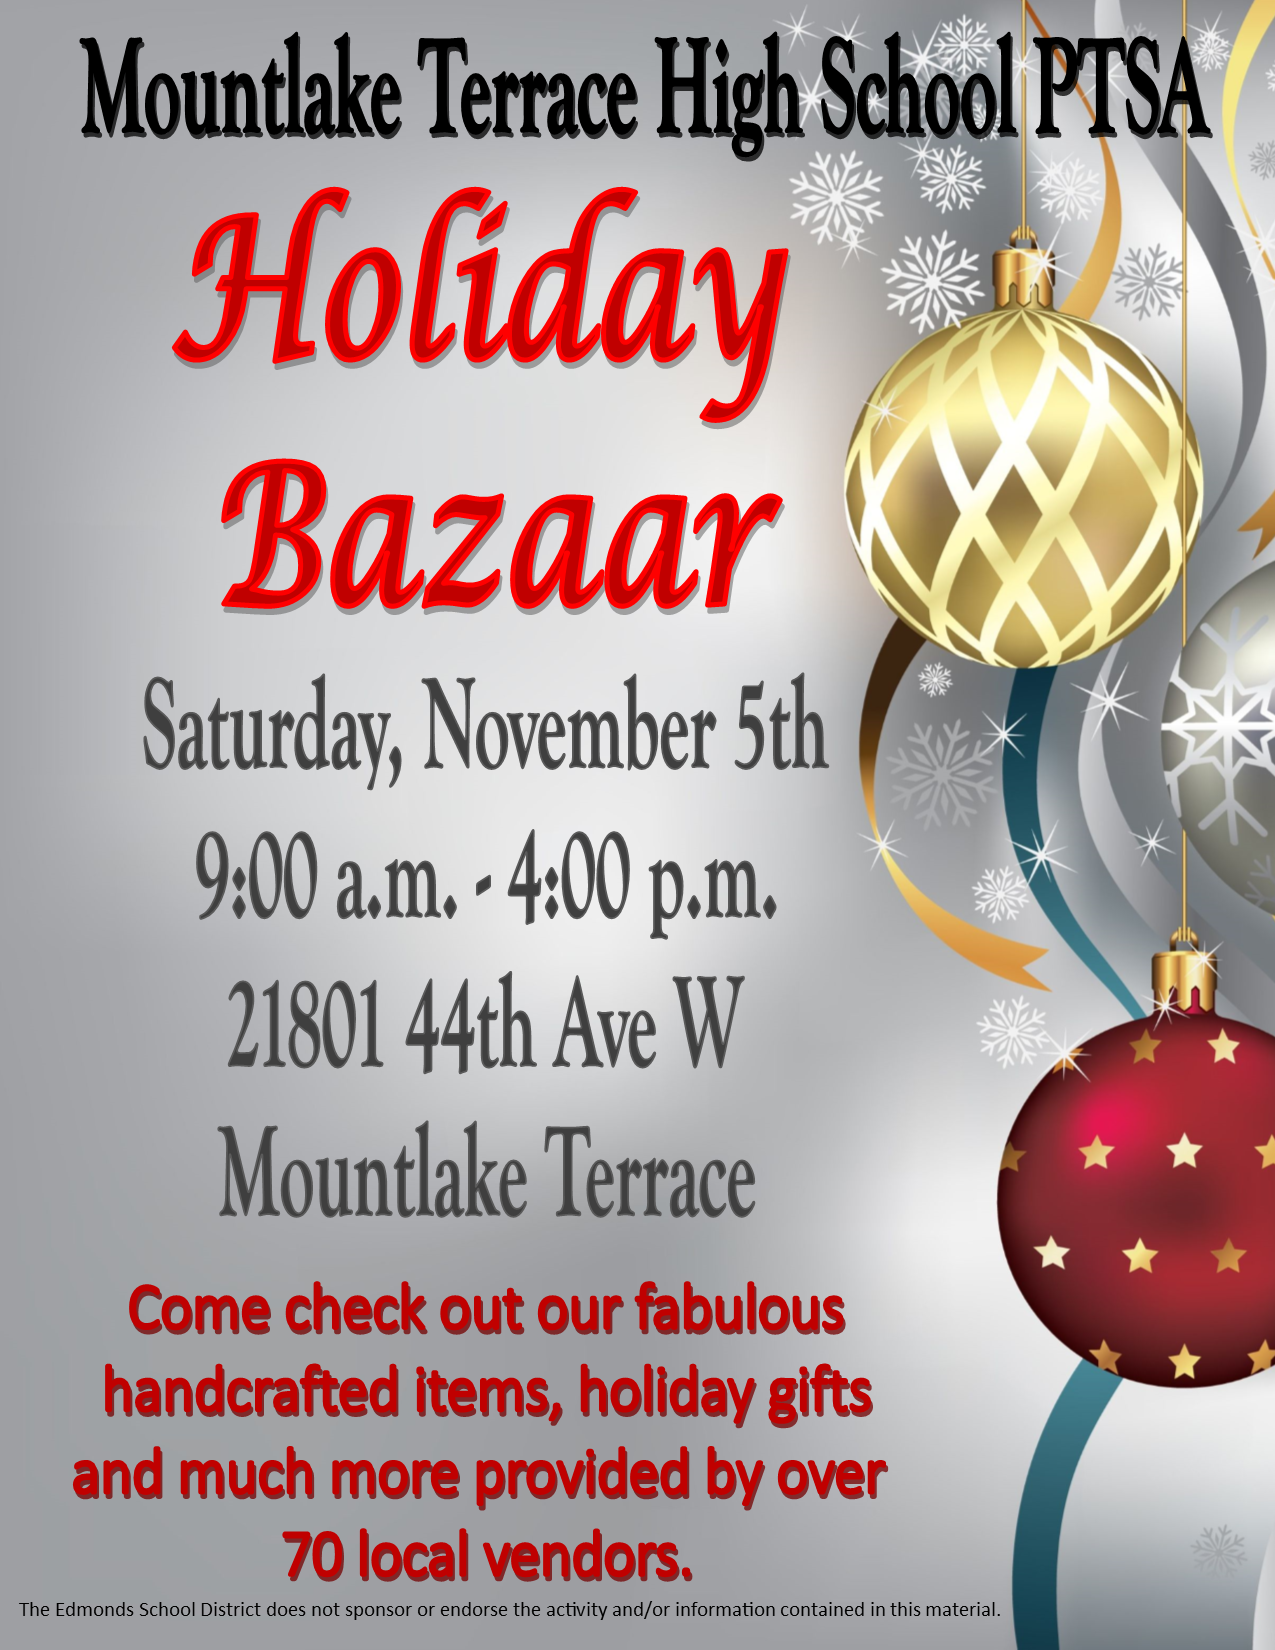 join us for your holiday shopping our 16th annual holiday bazaar is the first saturday of november we will have over 70 vendors selling handmade gifts